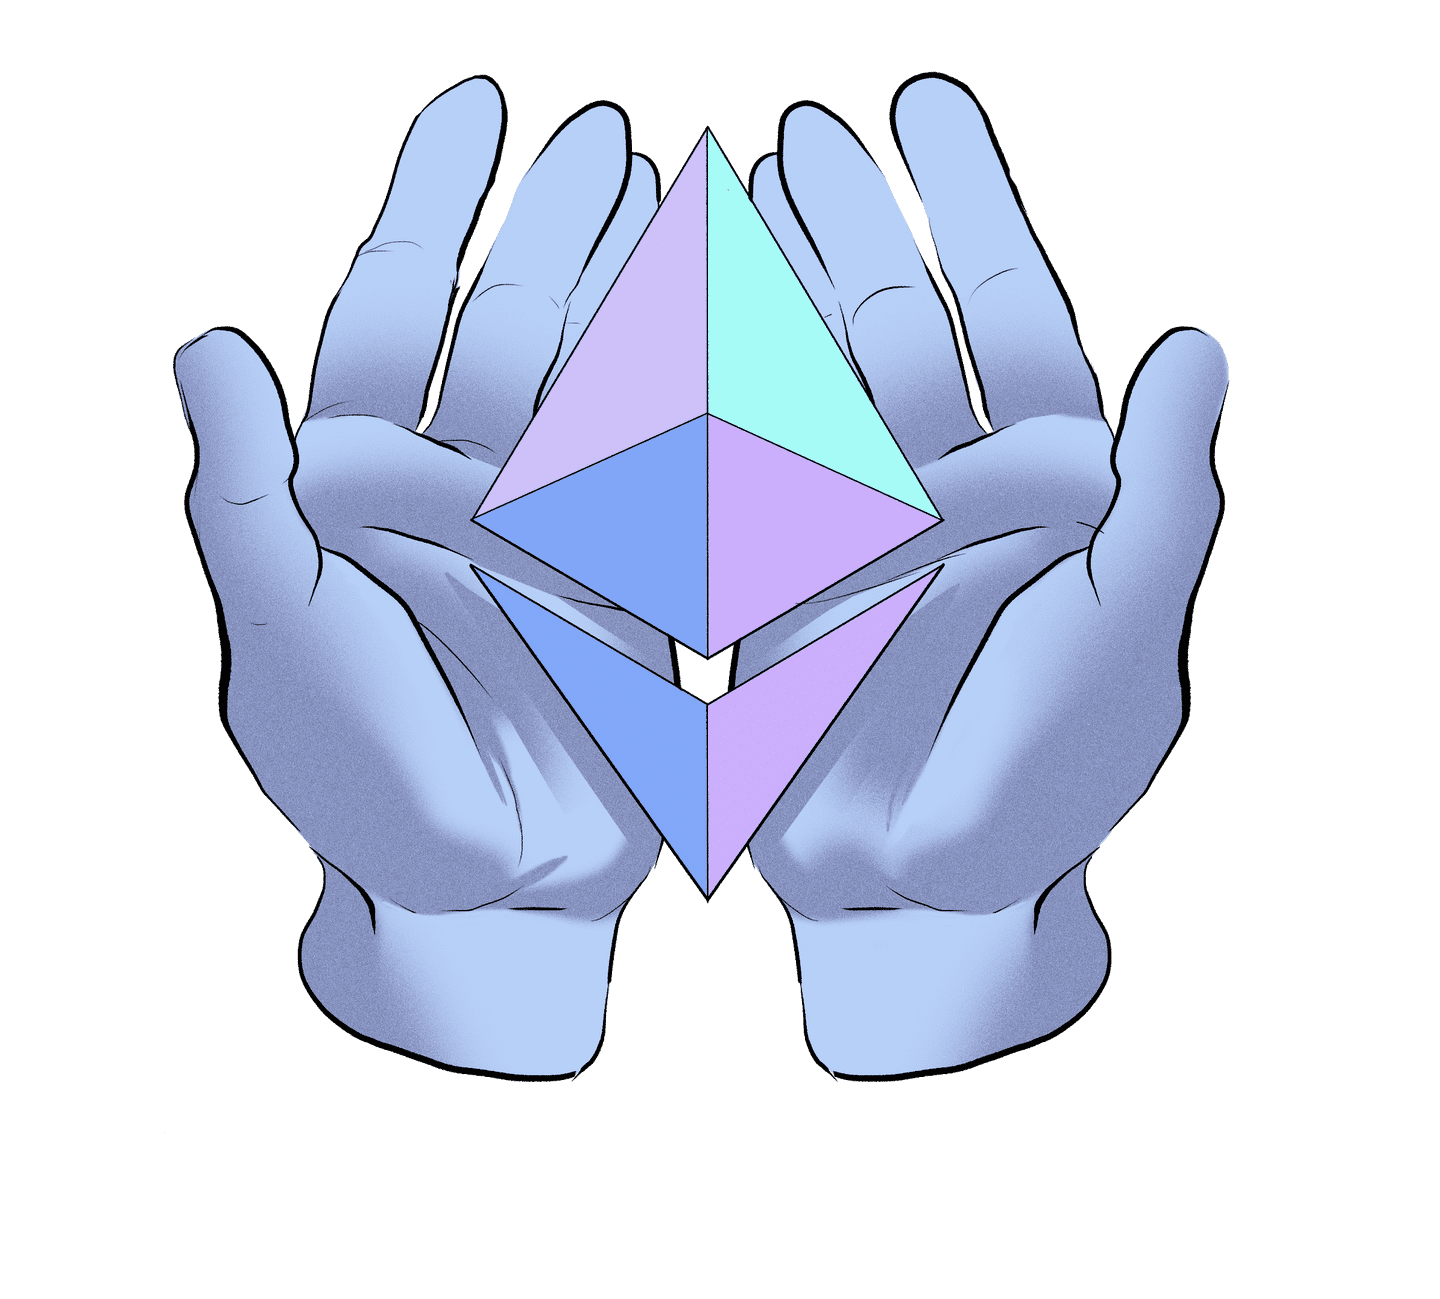 Illustration of hands offering an ETH symbol.